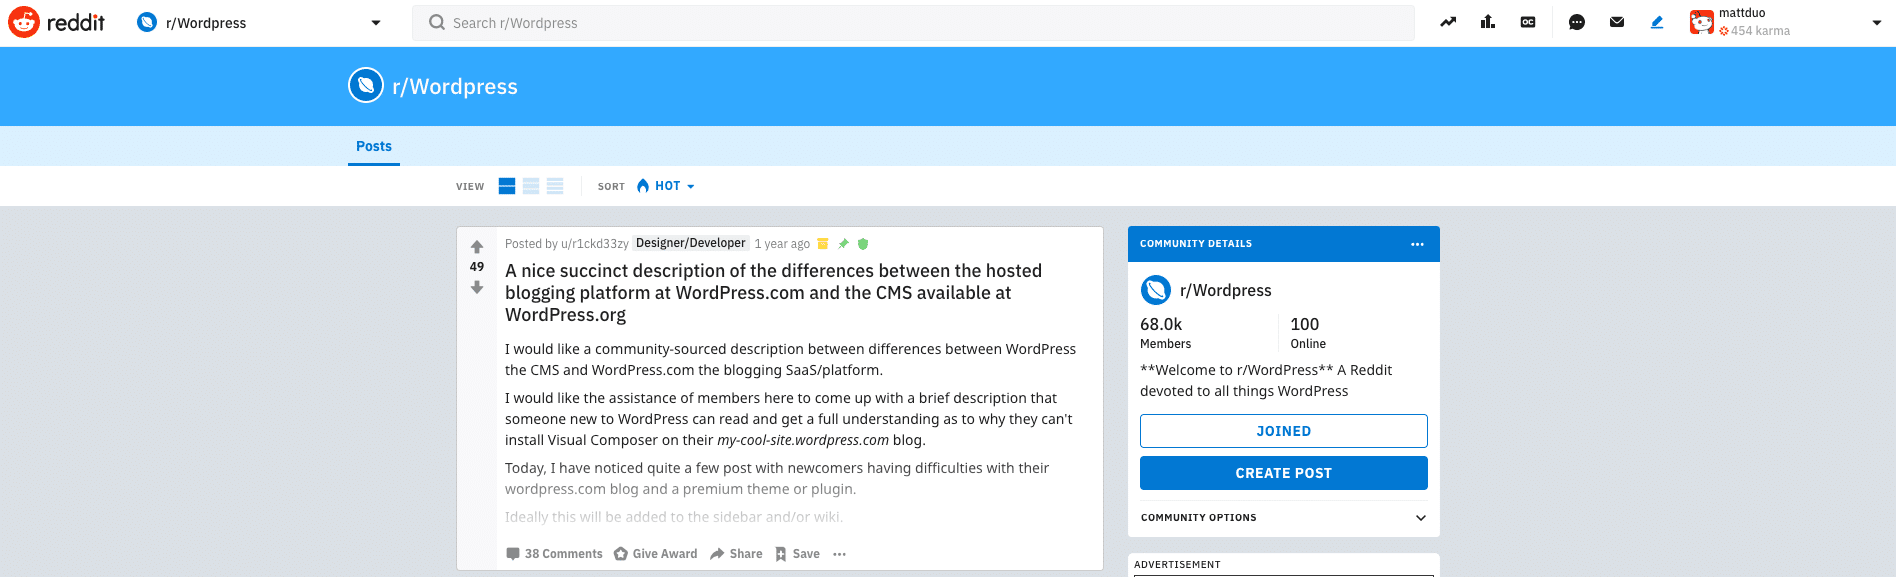 WordPress on Reddit